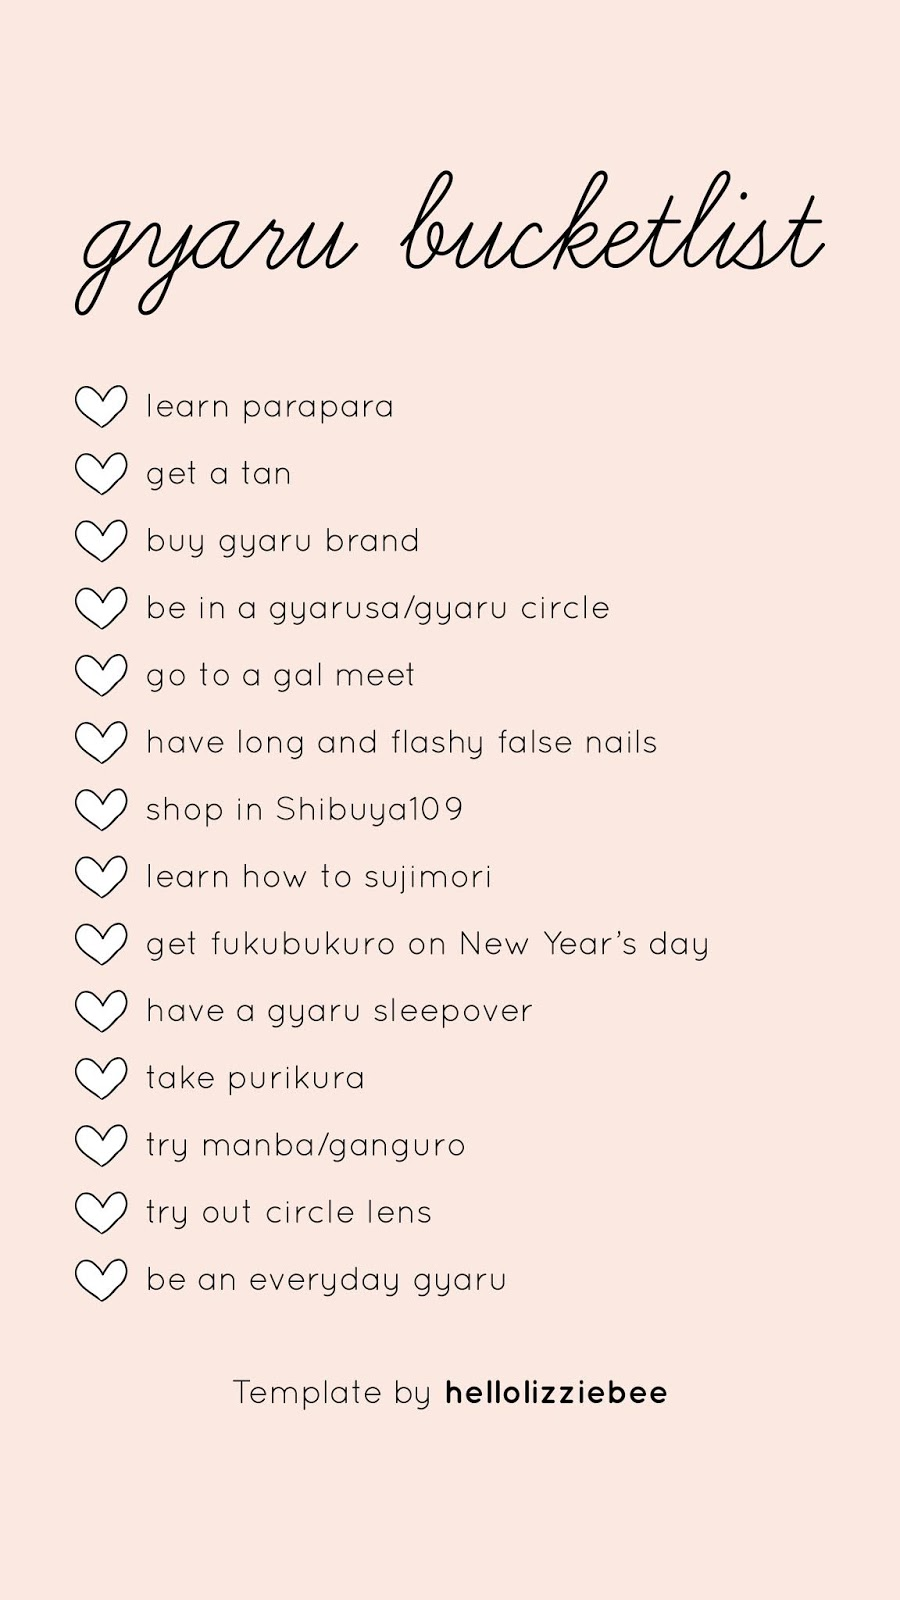 gyaru bucketlist instagram stories